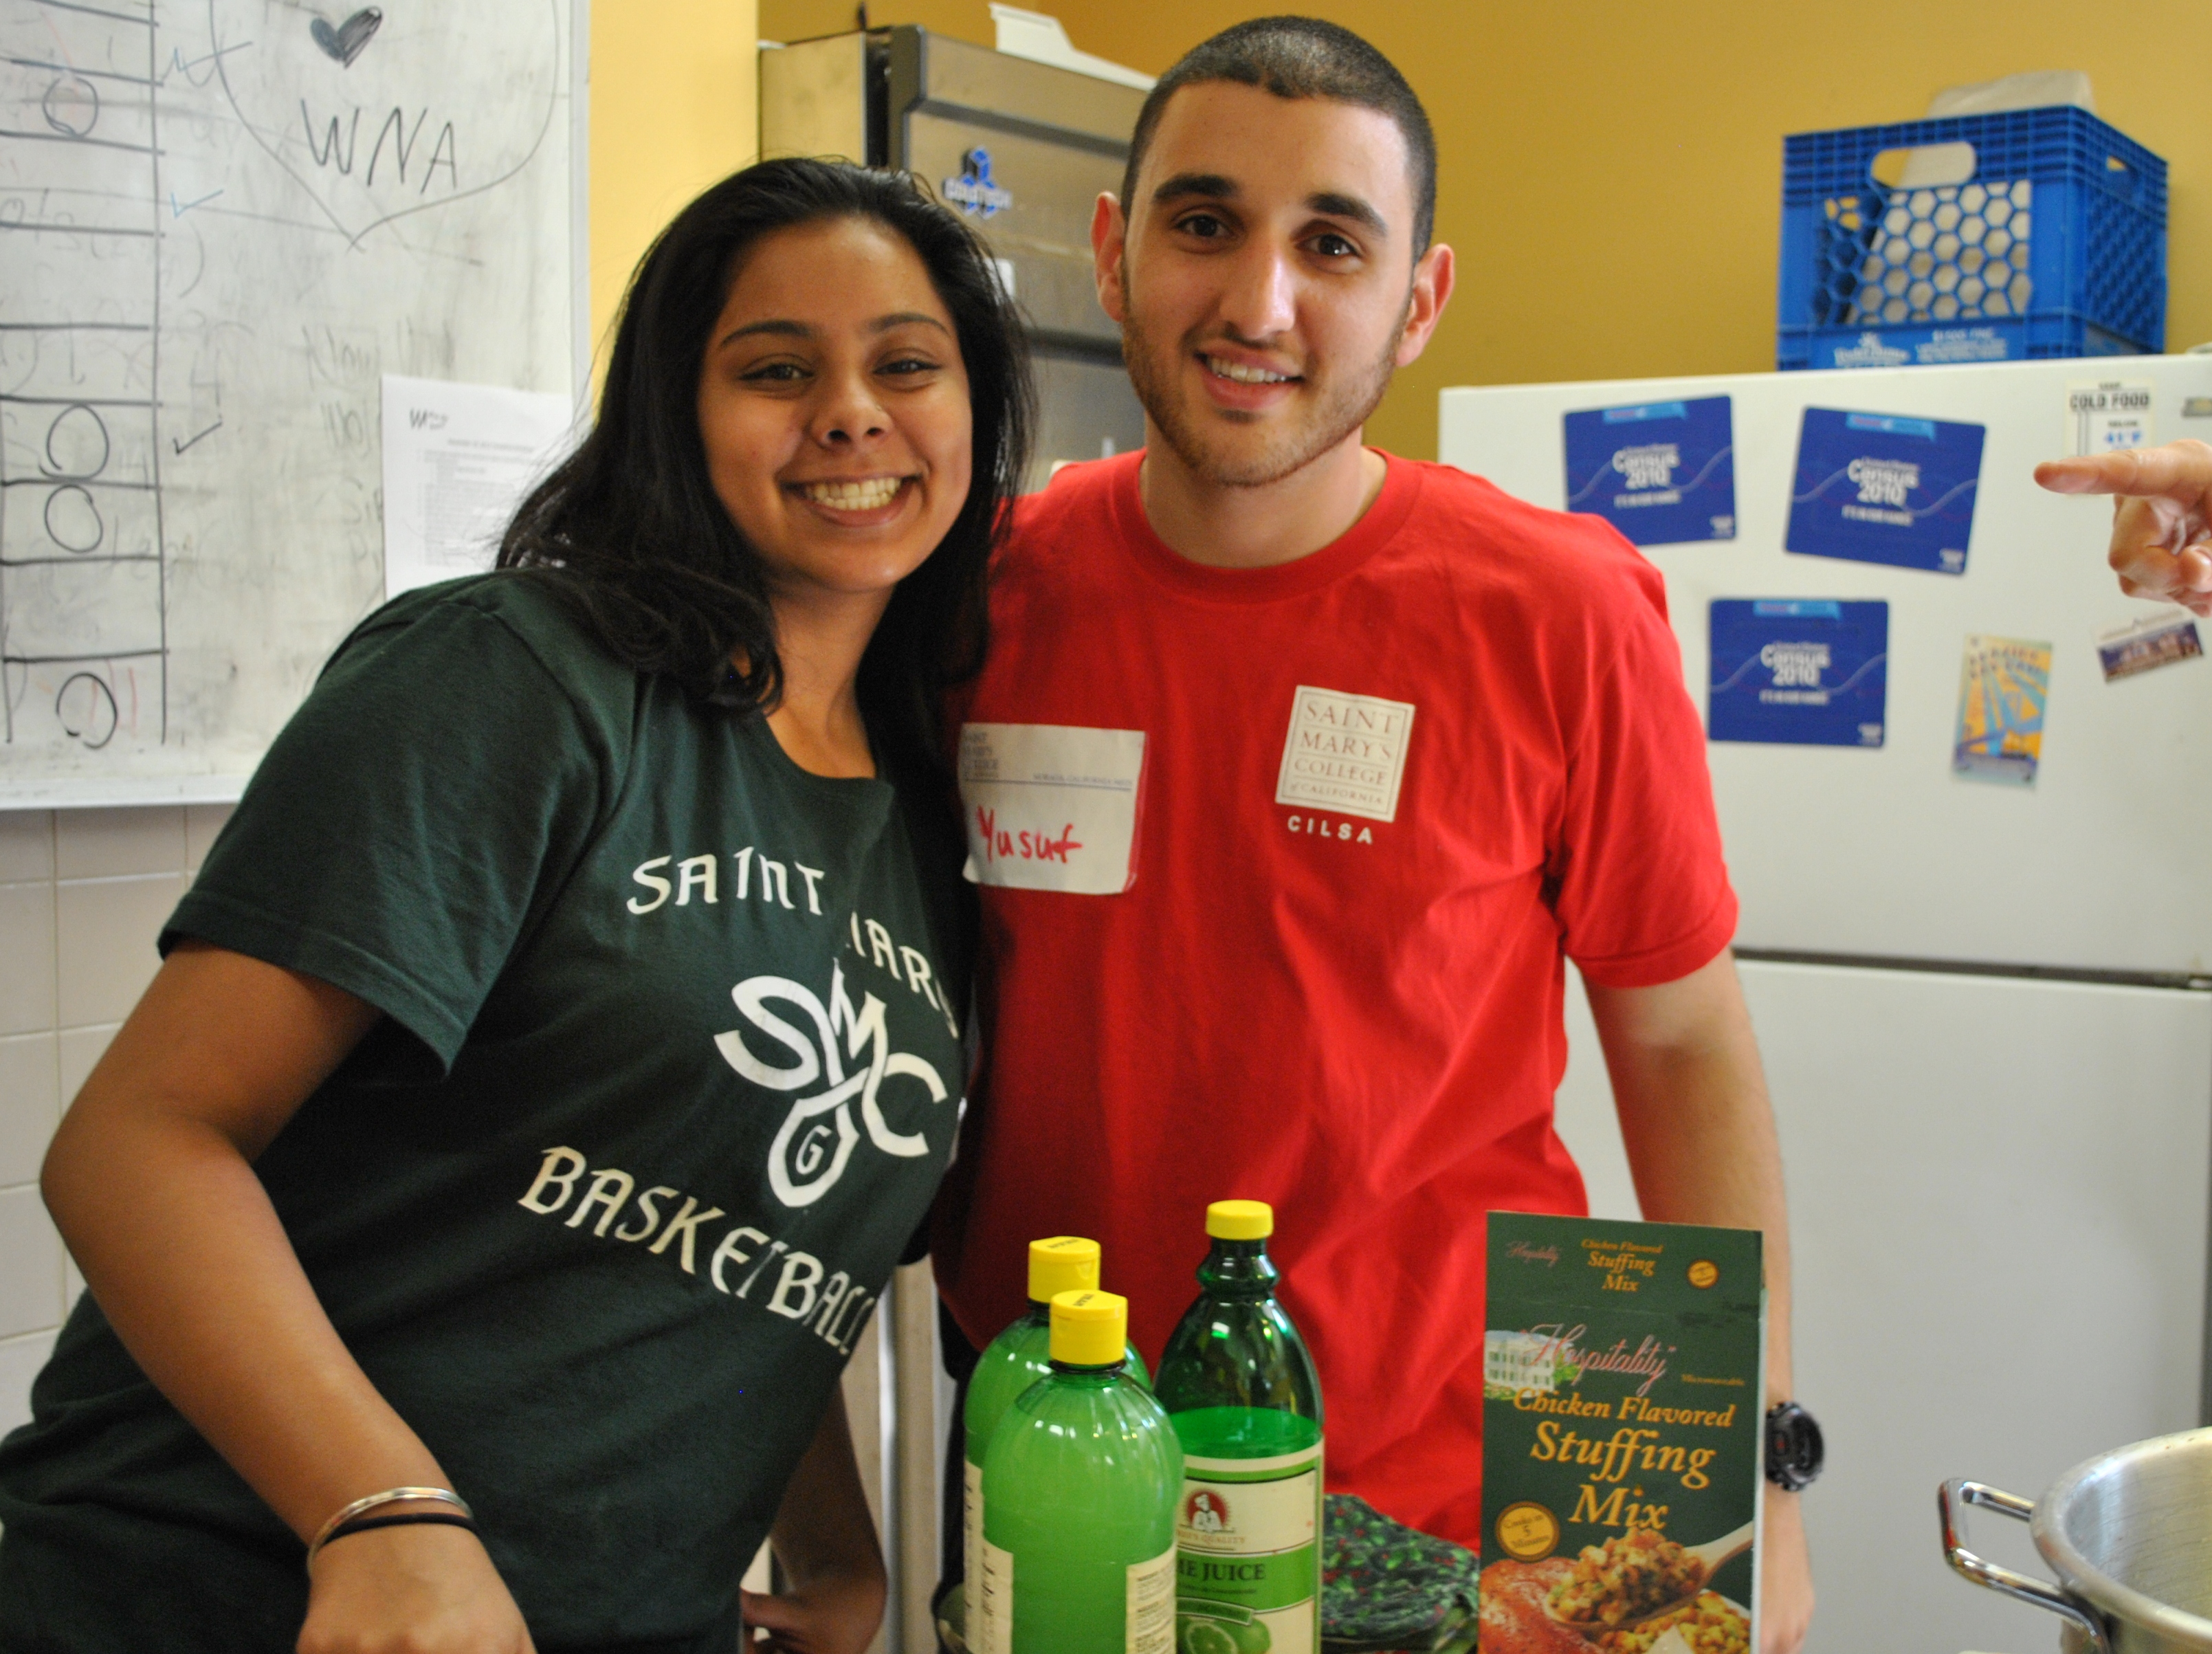 SMC student leaders at a local homeless shelter.